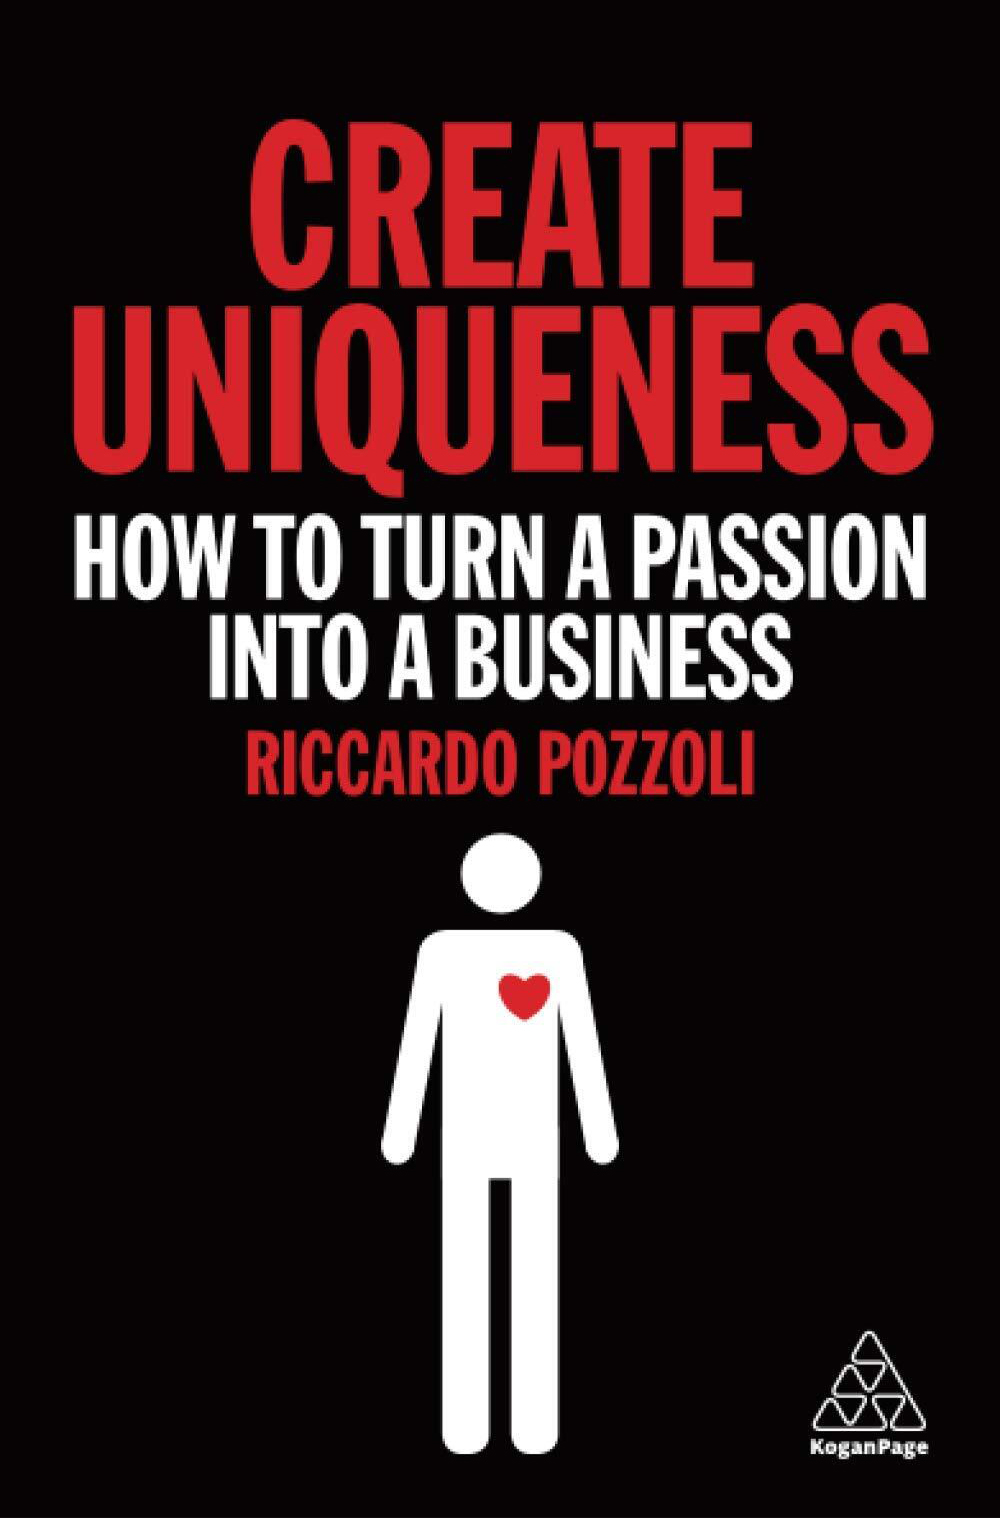 Create Uniqueness: How to Turn a Passion Into a Business